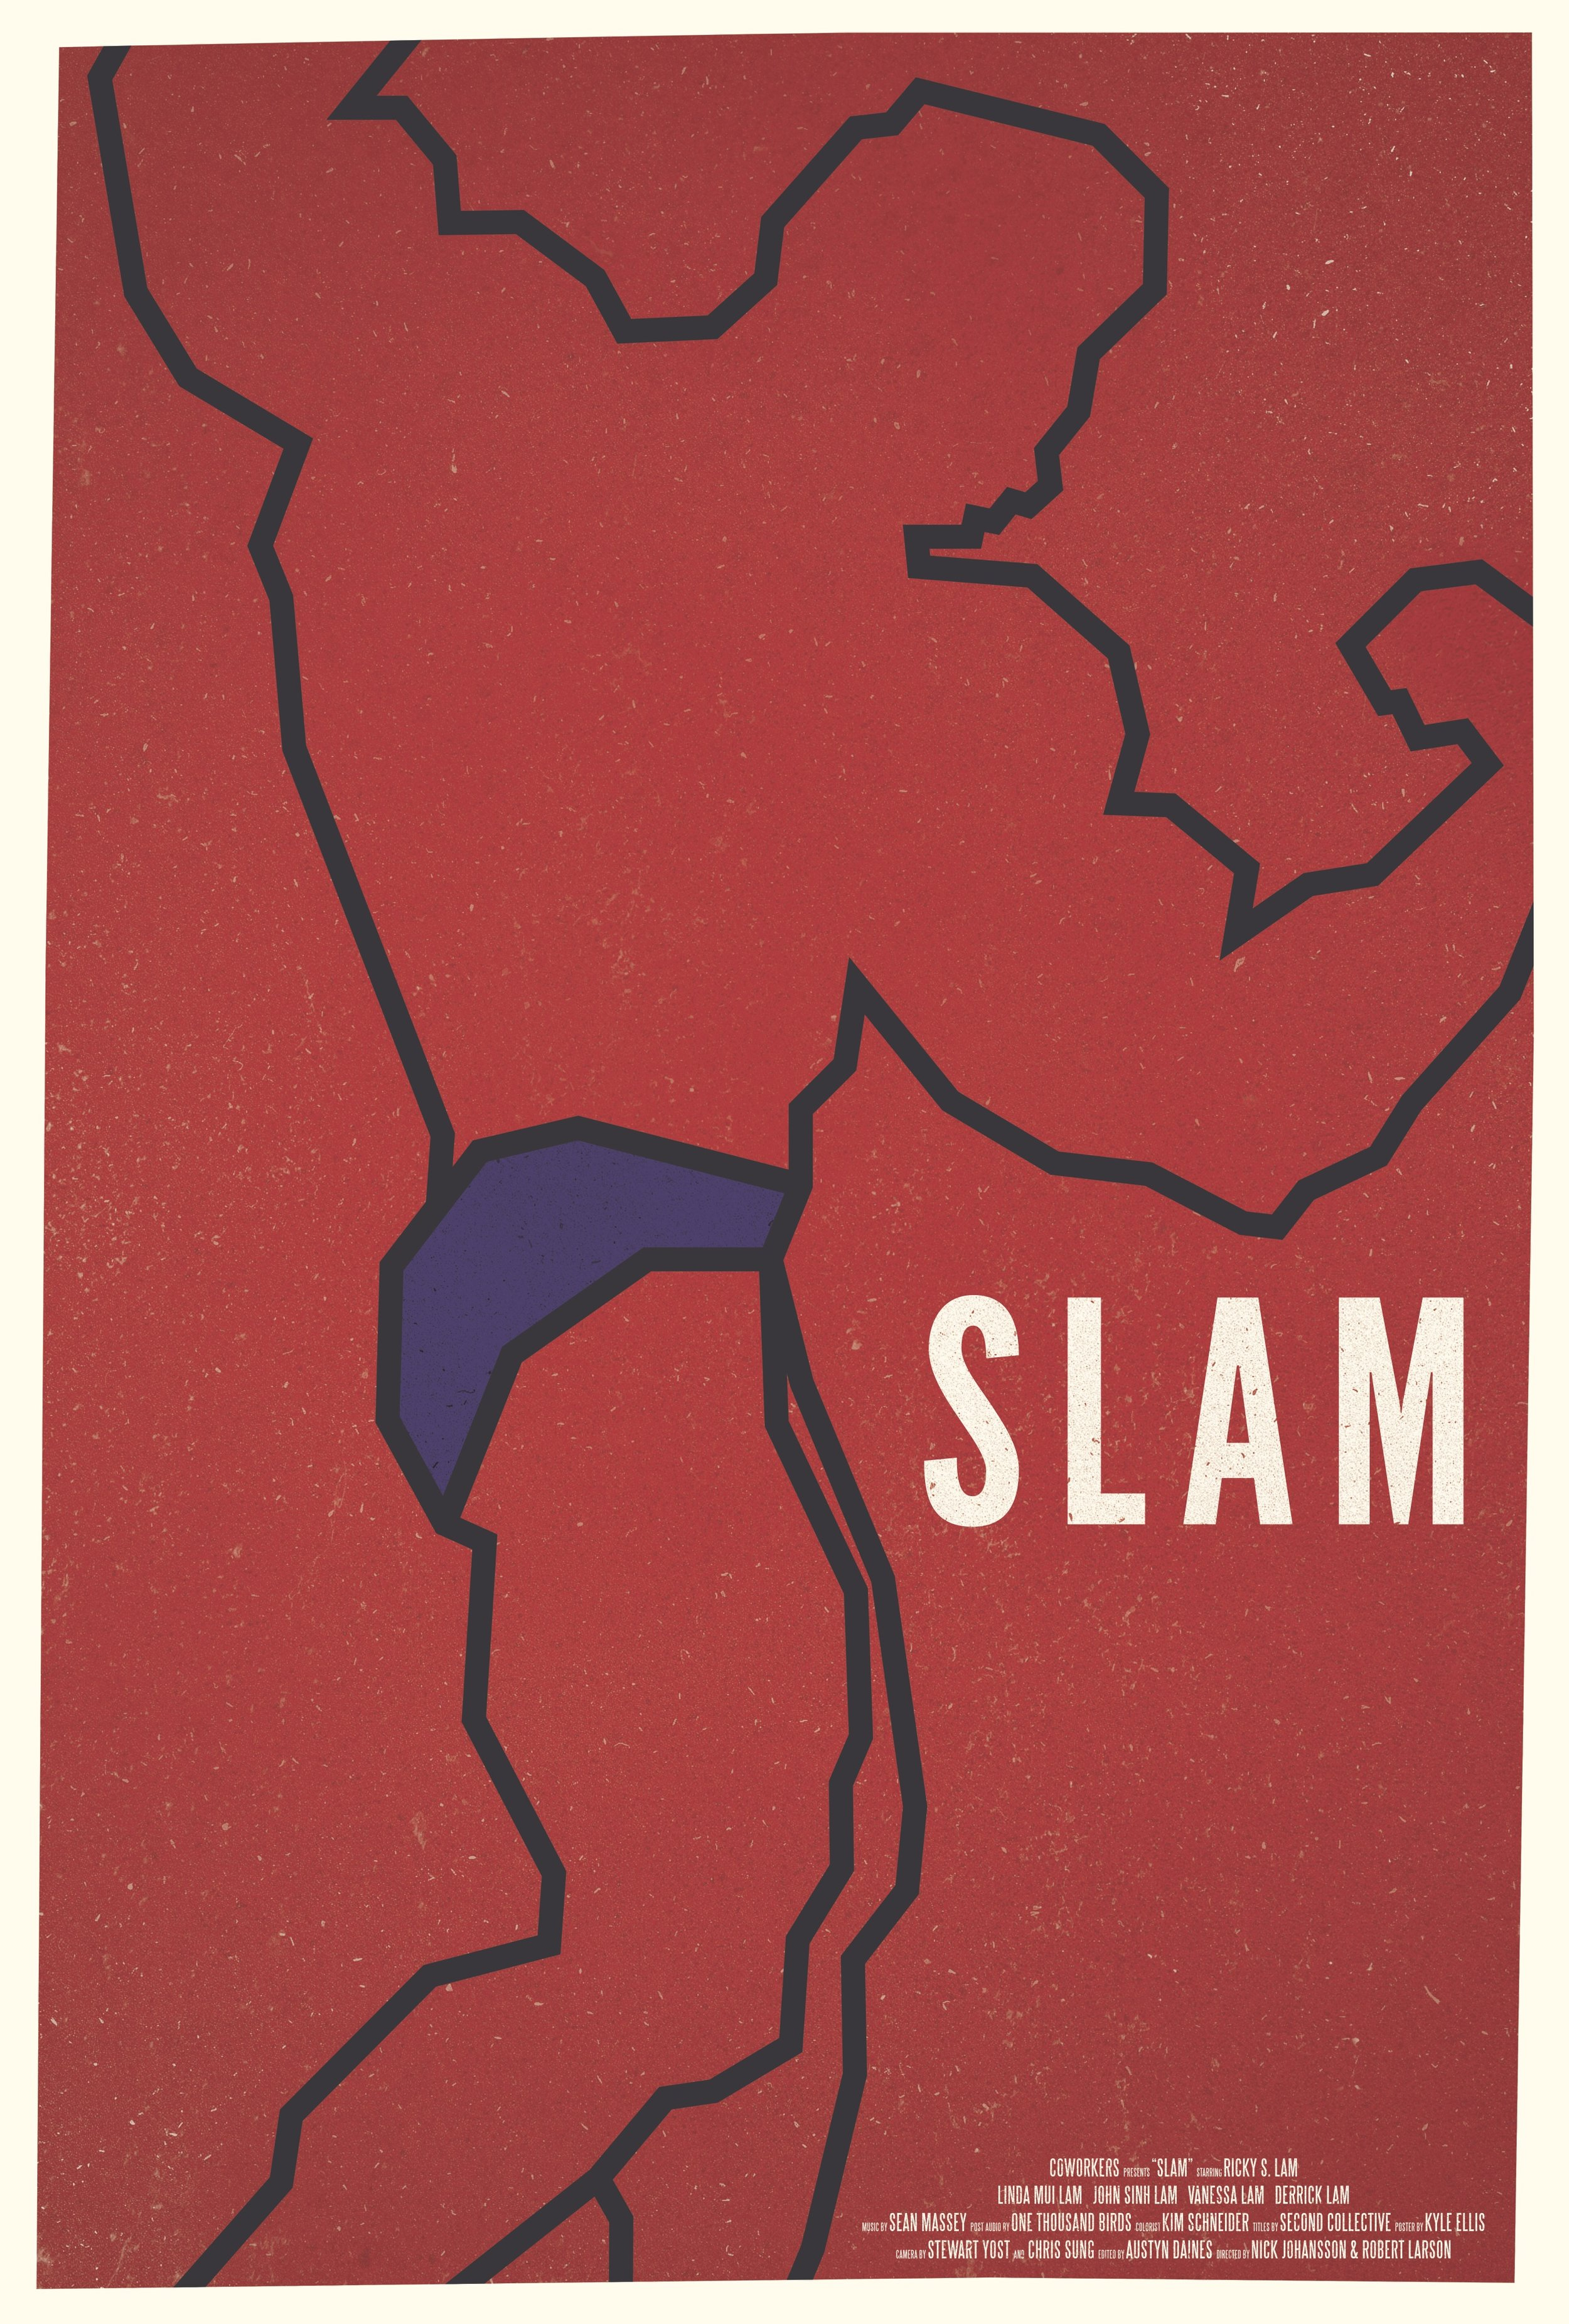 SLAM - Documentary Short - SLAM follows Ricky S. Lam, an Asian-American man entering his first ever body building competition. After several years of planning and training, we watch Ricky's intense desire and drive lead to his crowning moment, as he steps on stage to finally bear his brawn.His name is Ricky, people call him SLAM.